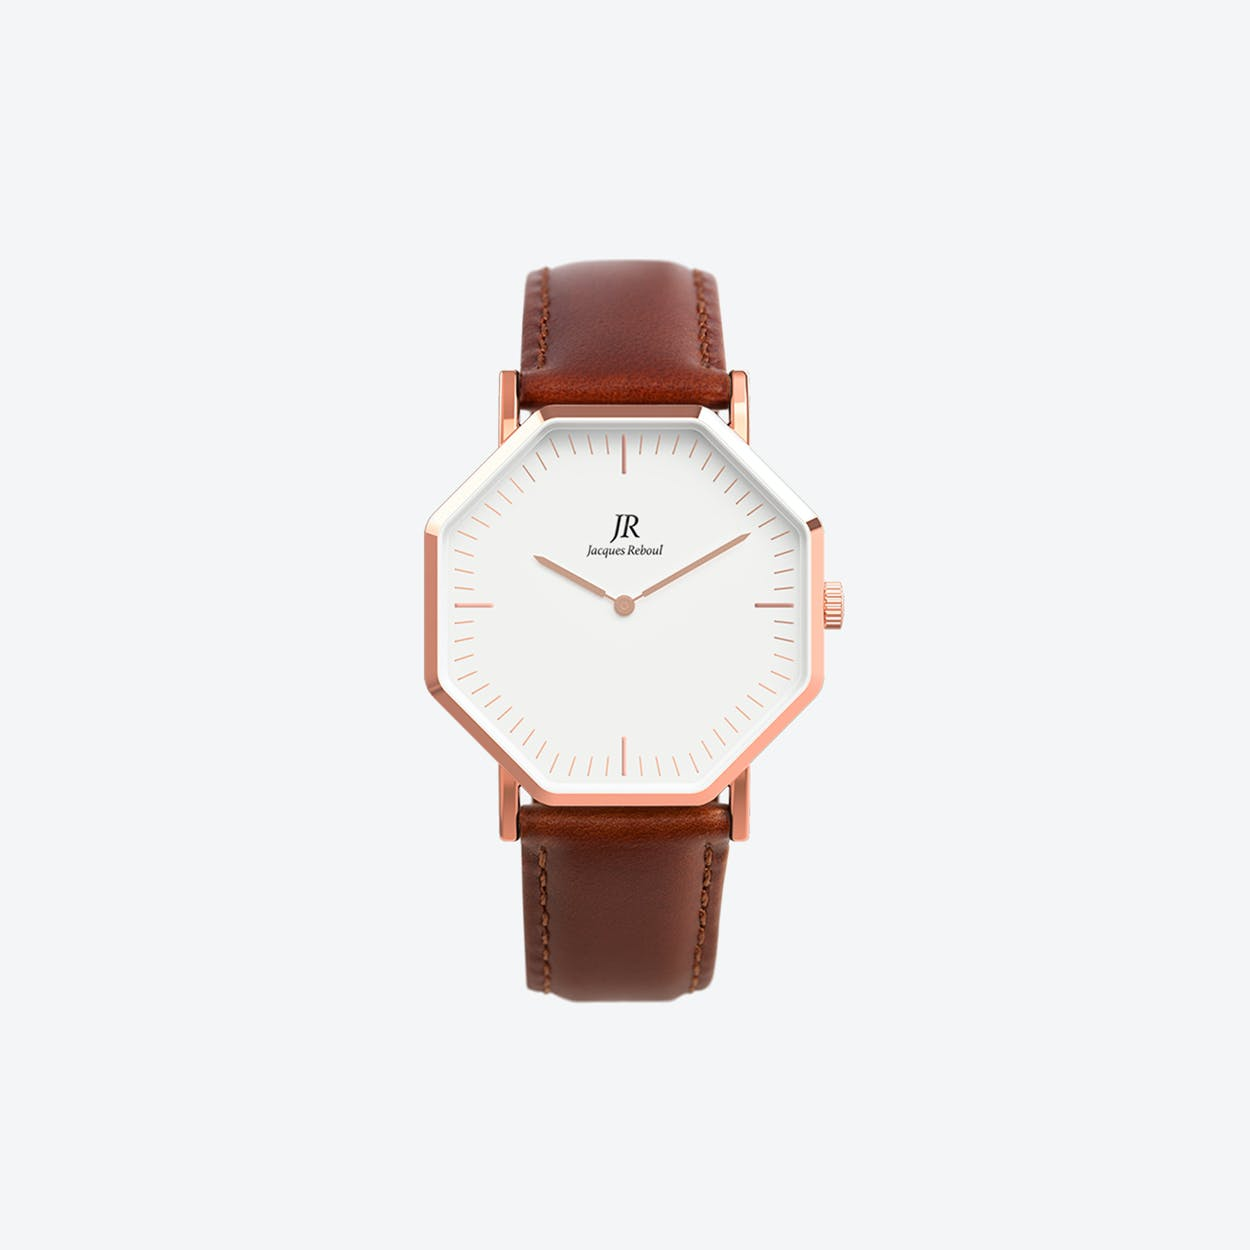 Lumiere Intense Classic Rose Gold Hexagonal Watch with Brown Leather Strap 41mm